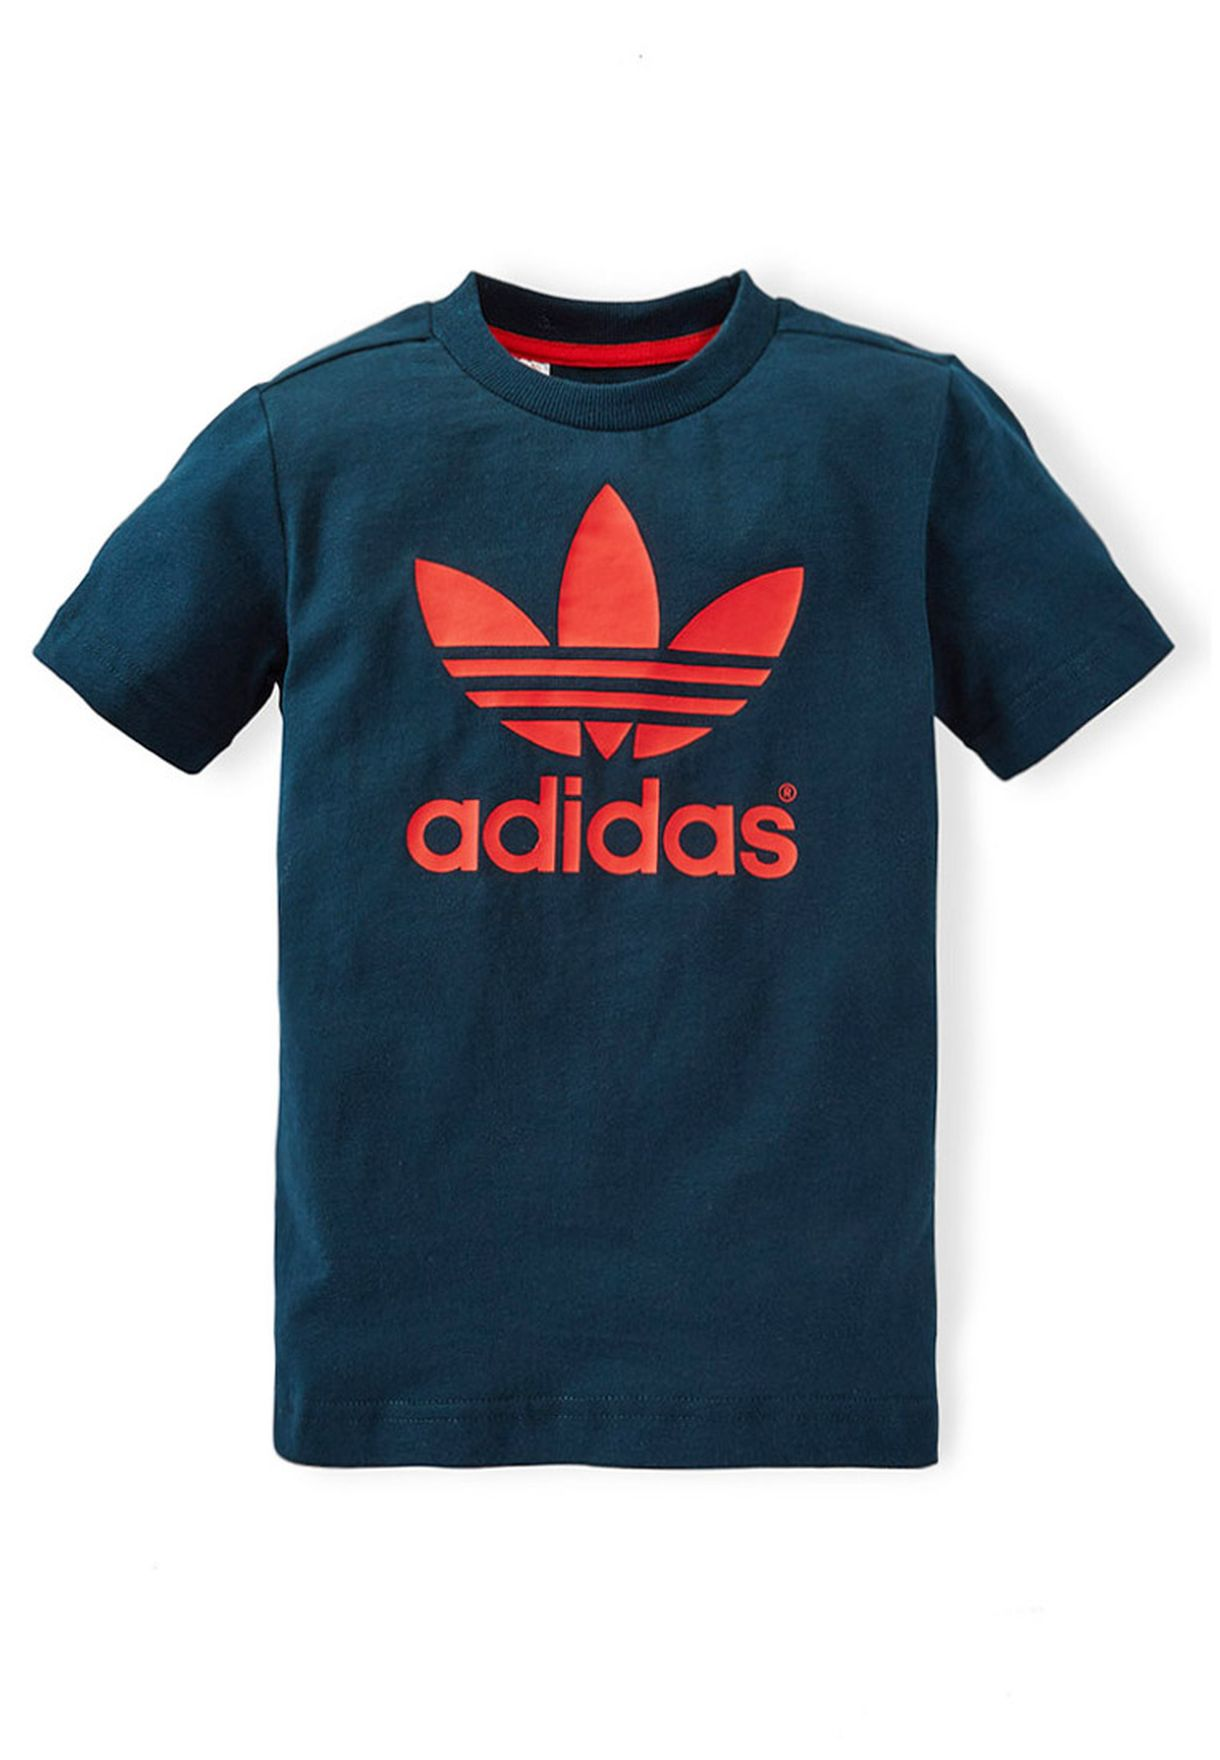 Shop adidas Originals green Youth Trefoil T-Shirt S14414 for Kids in Kuwait  - AD478AT55IRO 10191787ad